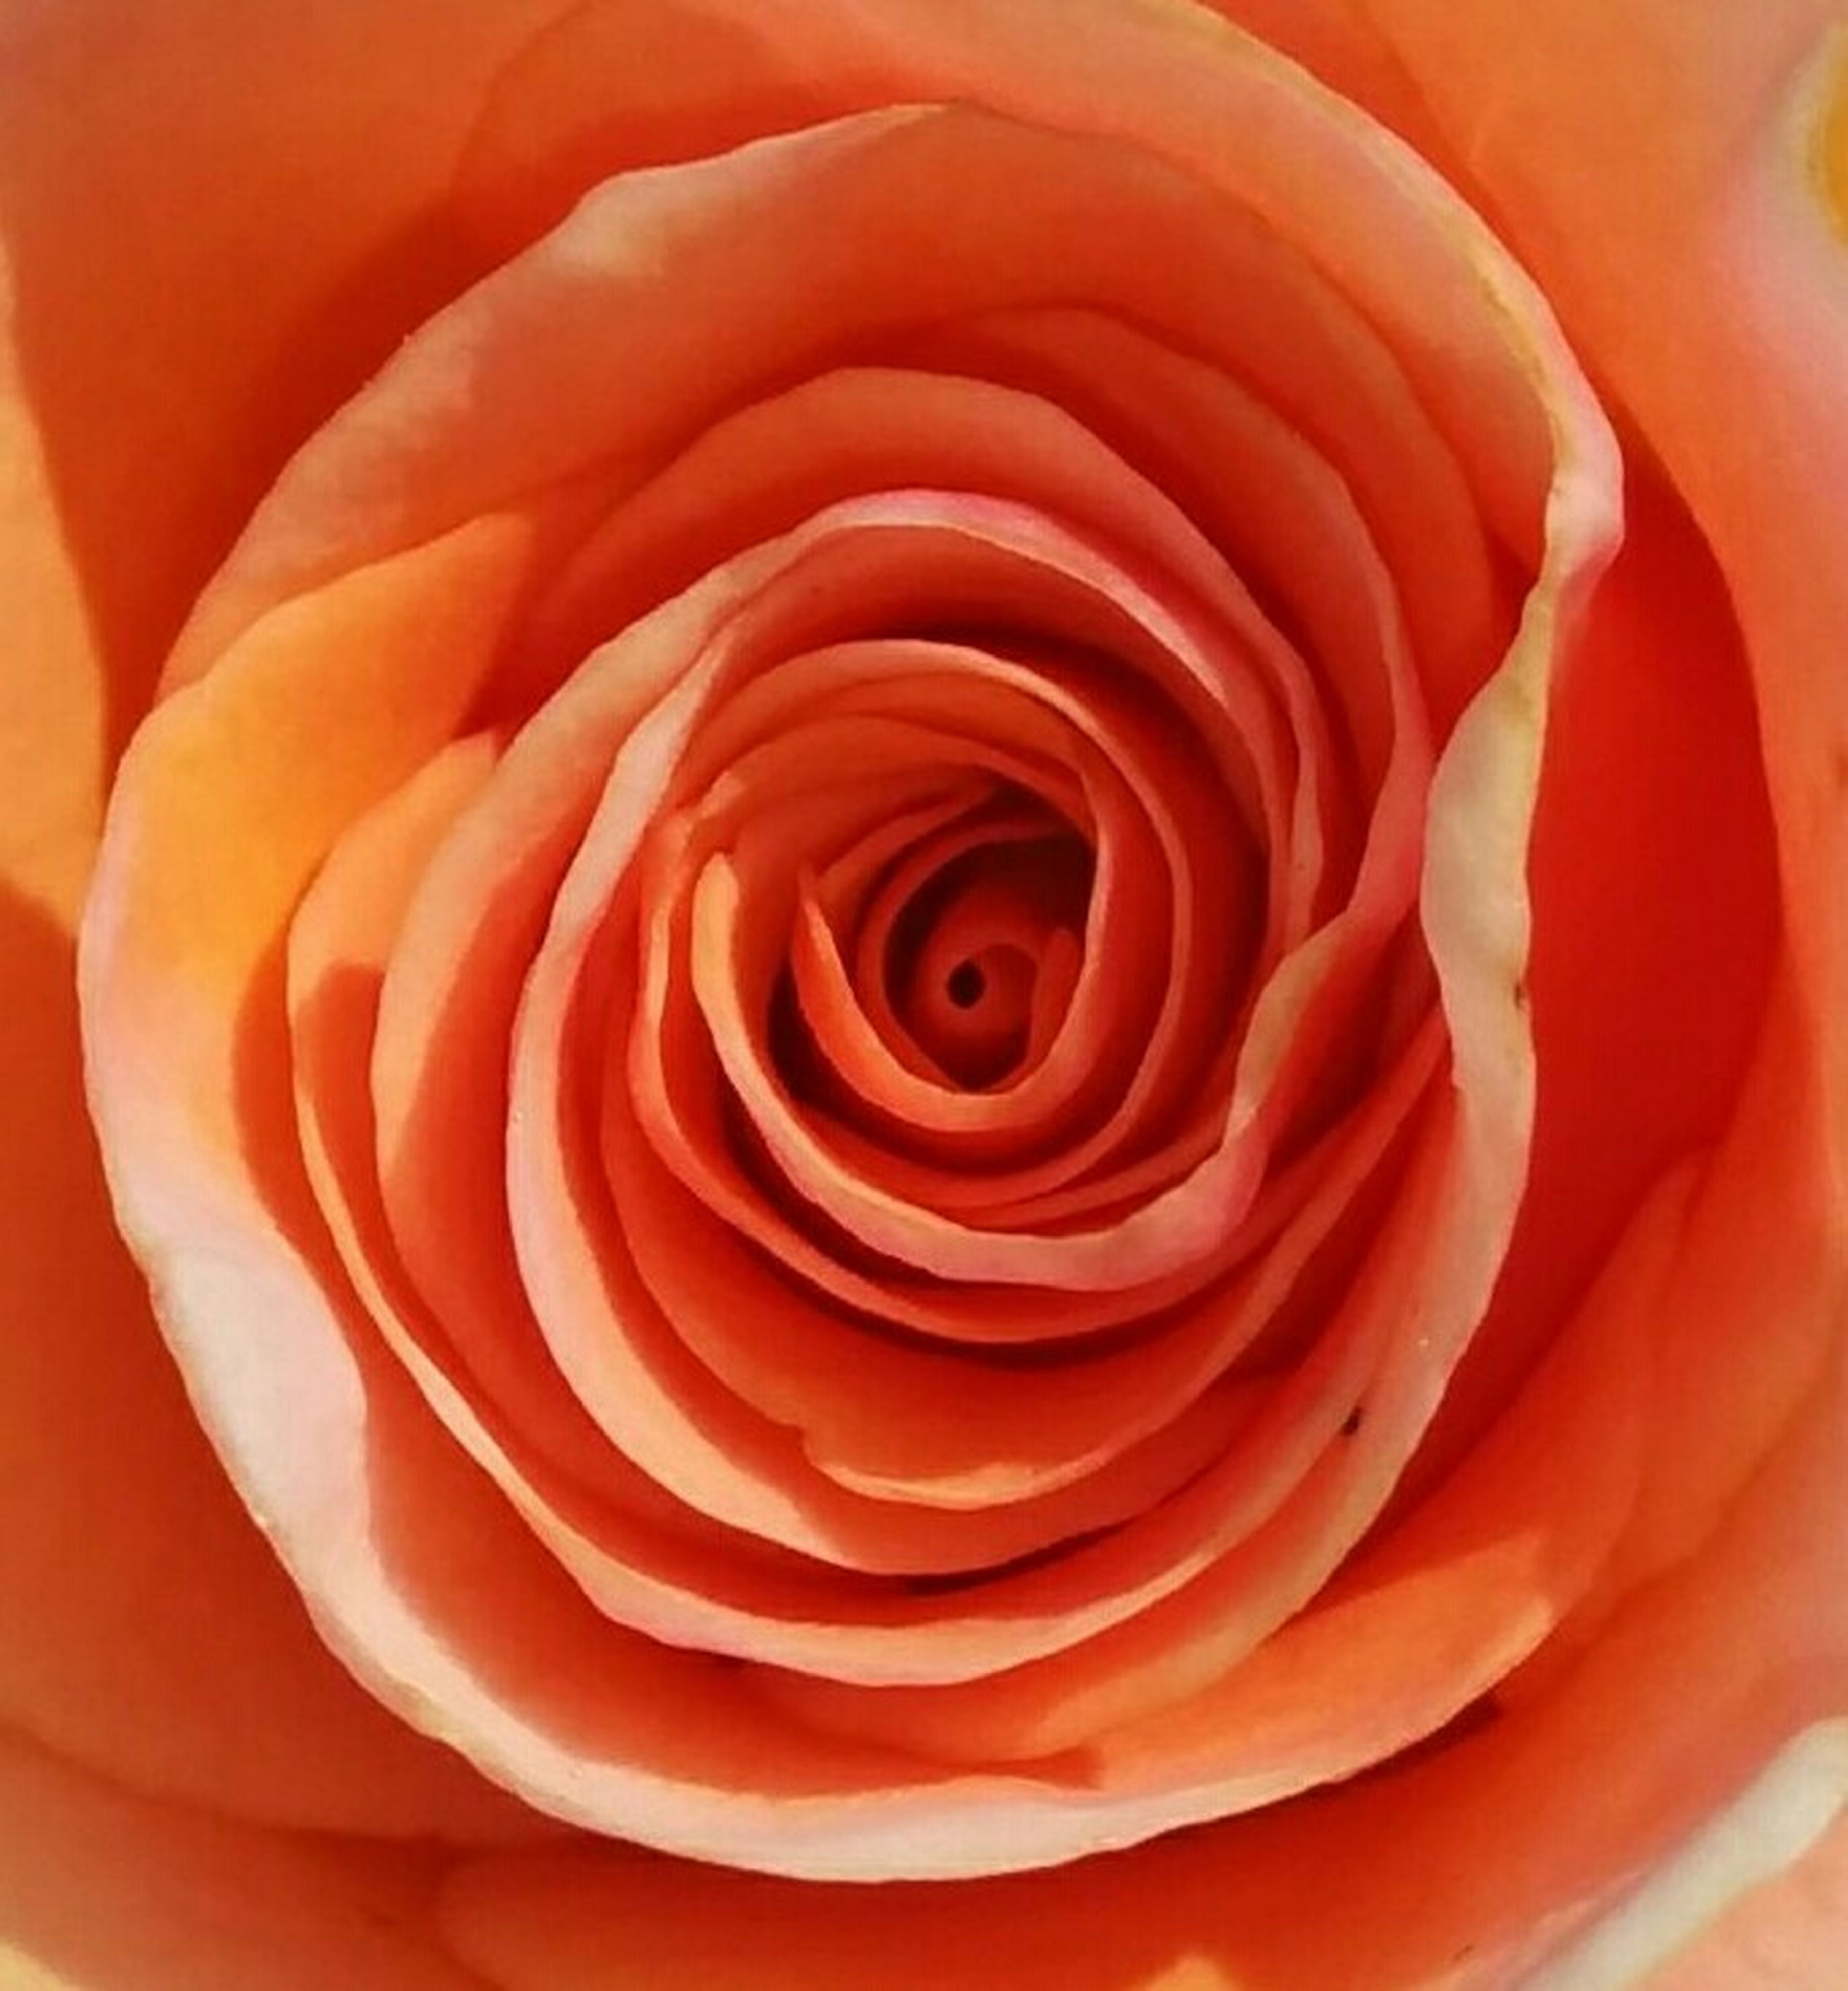 flower, petal, rose - flower, freshness, flower head, full frame, fragility, beauty in nature, close-up, backgrounds, single flower, natural pattern, rose, nature, growth, red, pattern, orange color, no people, extreme close-up